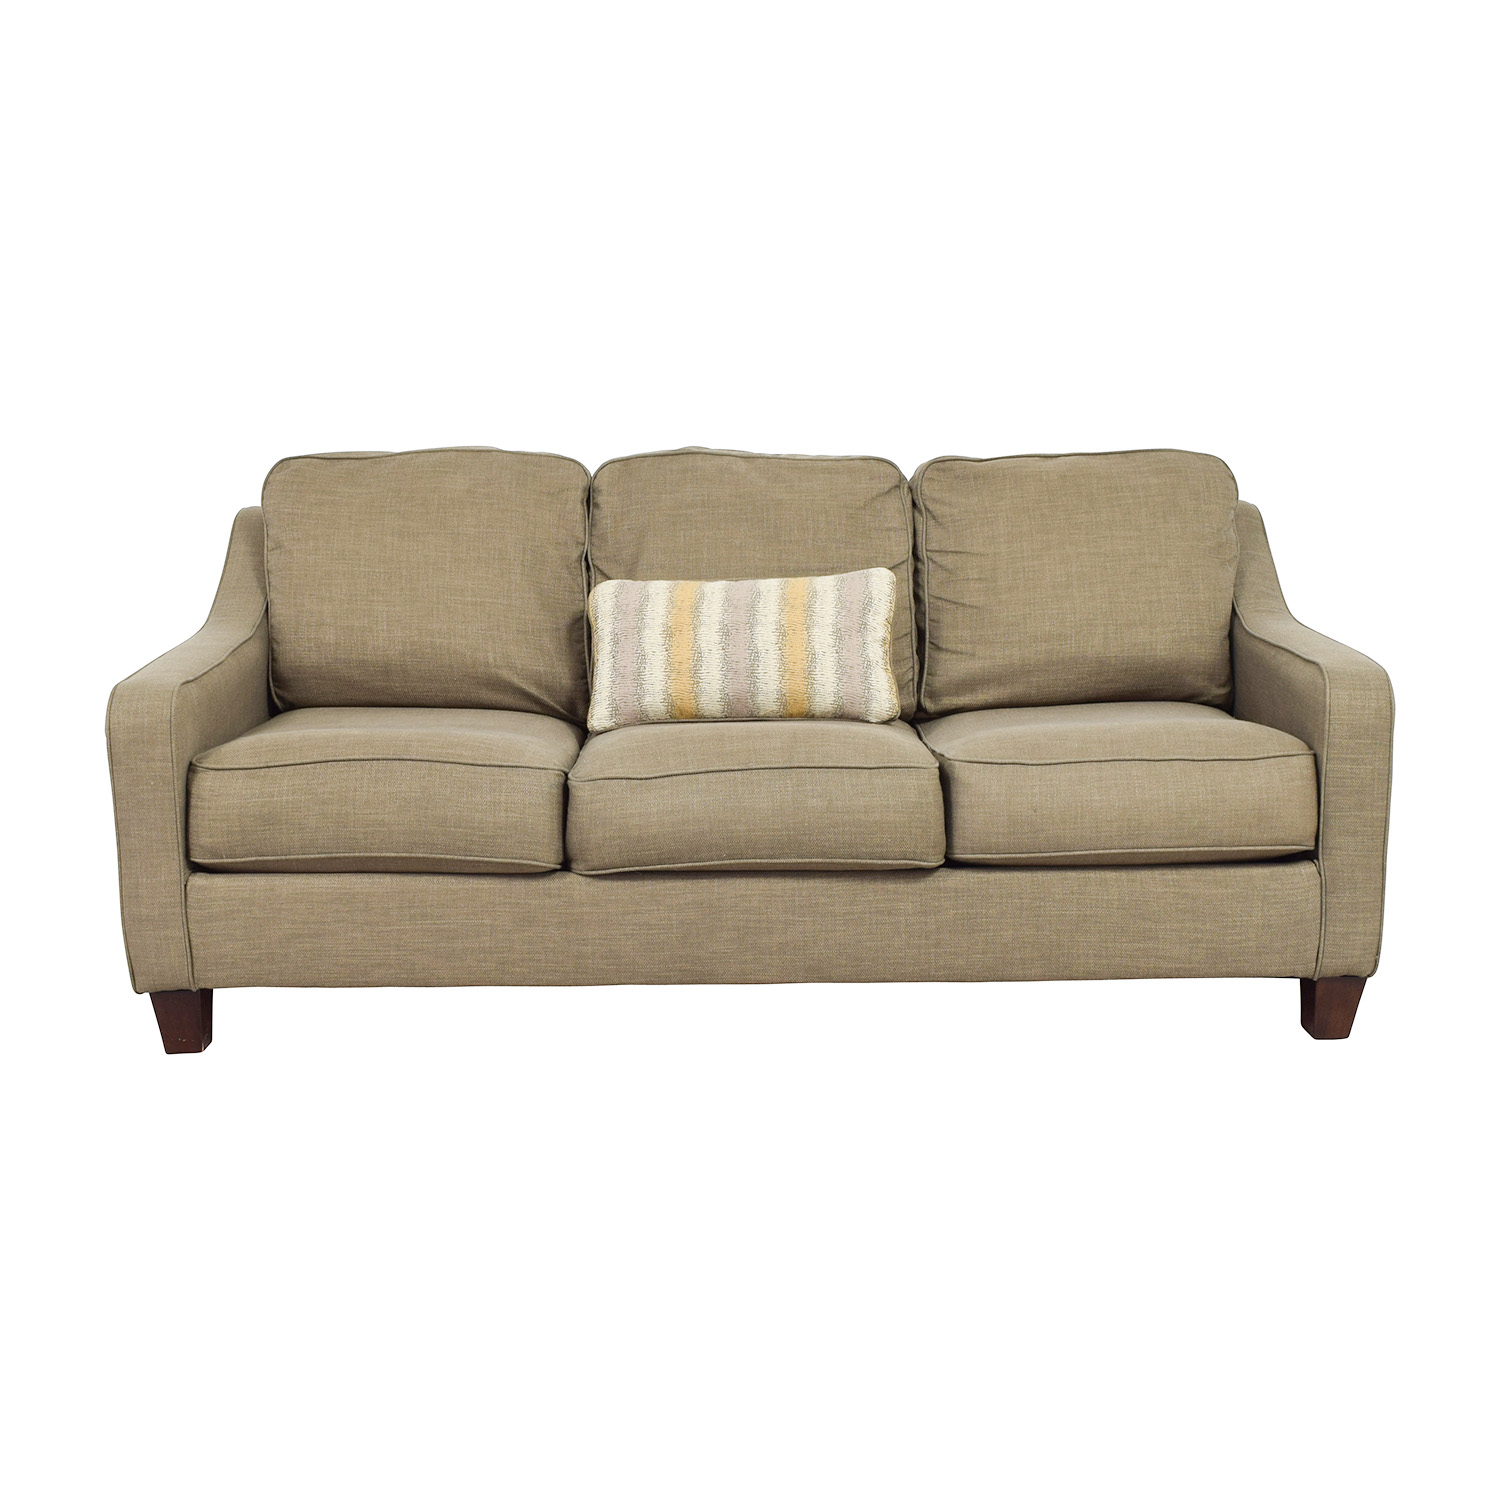 brown accent pillows sofa leather uk 55 off jennifer furniture